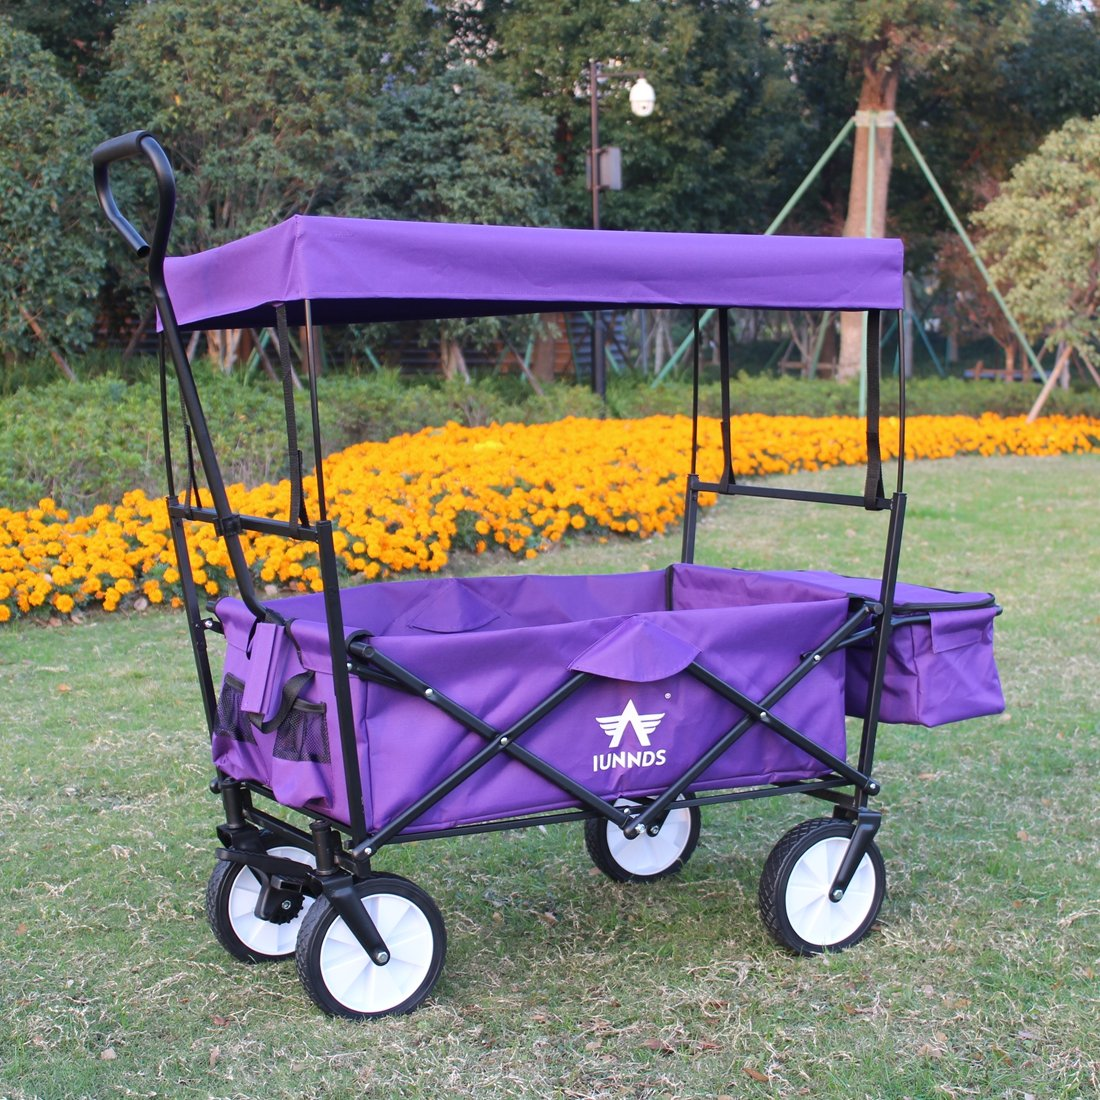 Sports God Folding Wagon Collapsible Utility Graden Cart with Removable Canopy + Storage Basket + FREE Cooler (Purple) by Sports God (Image #7)